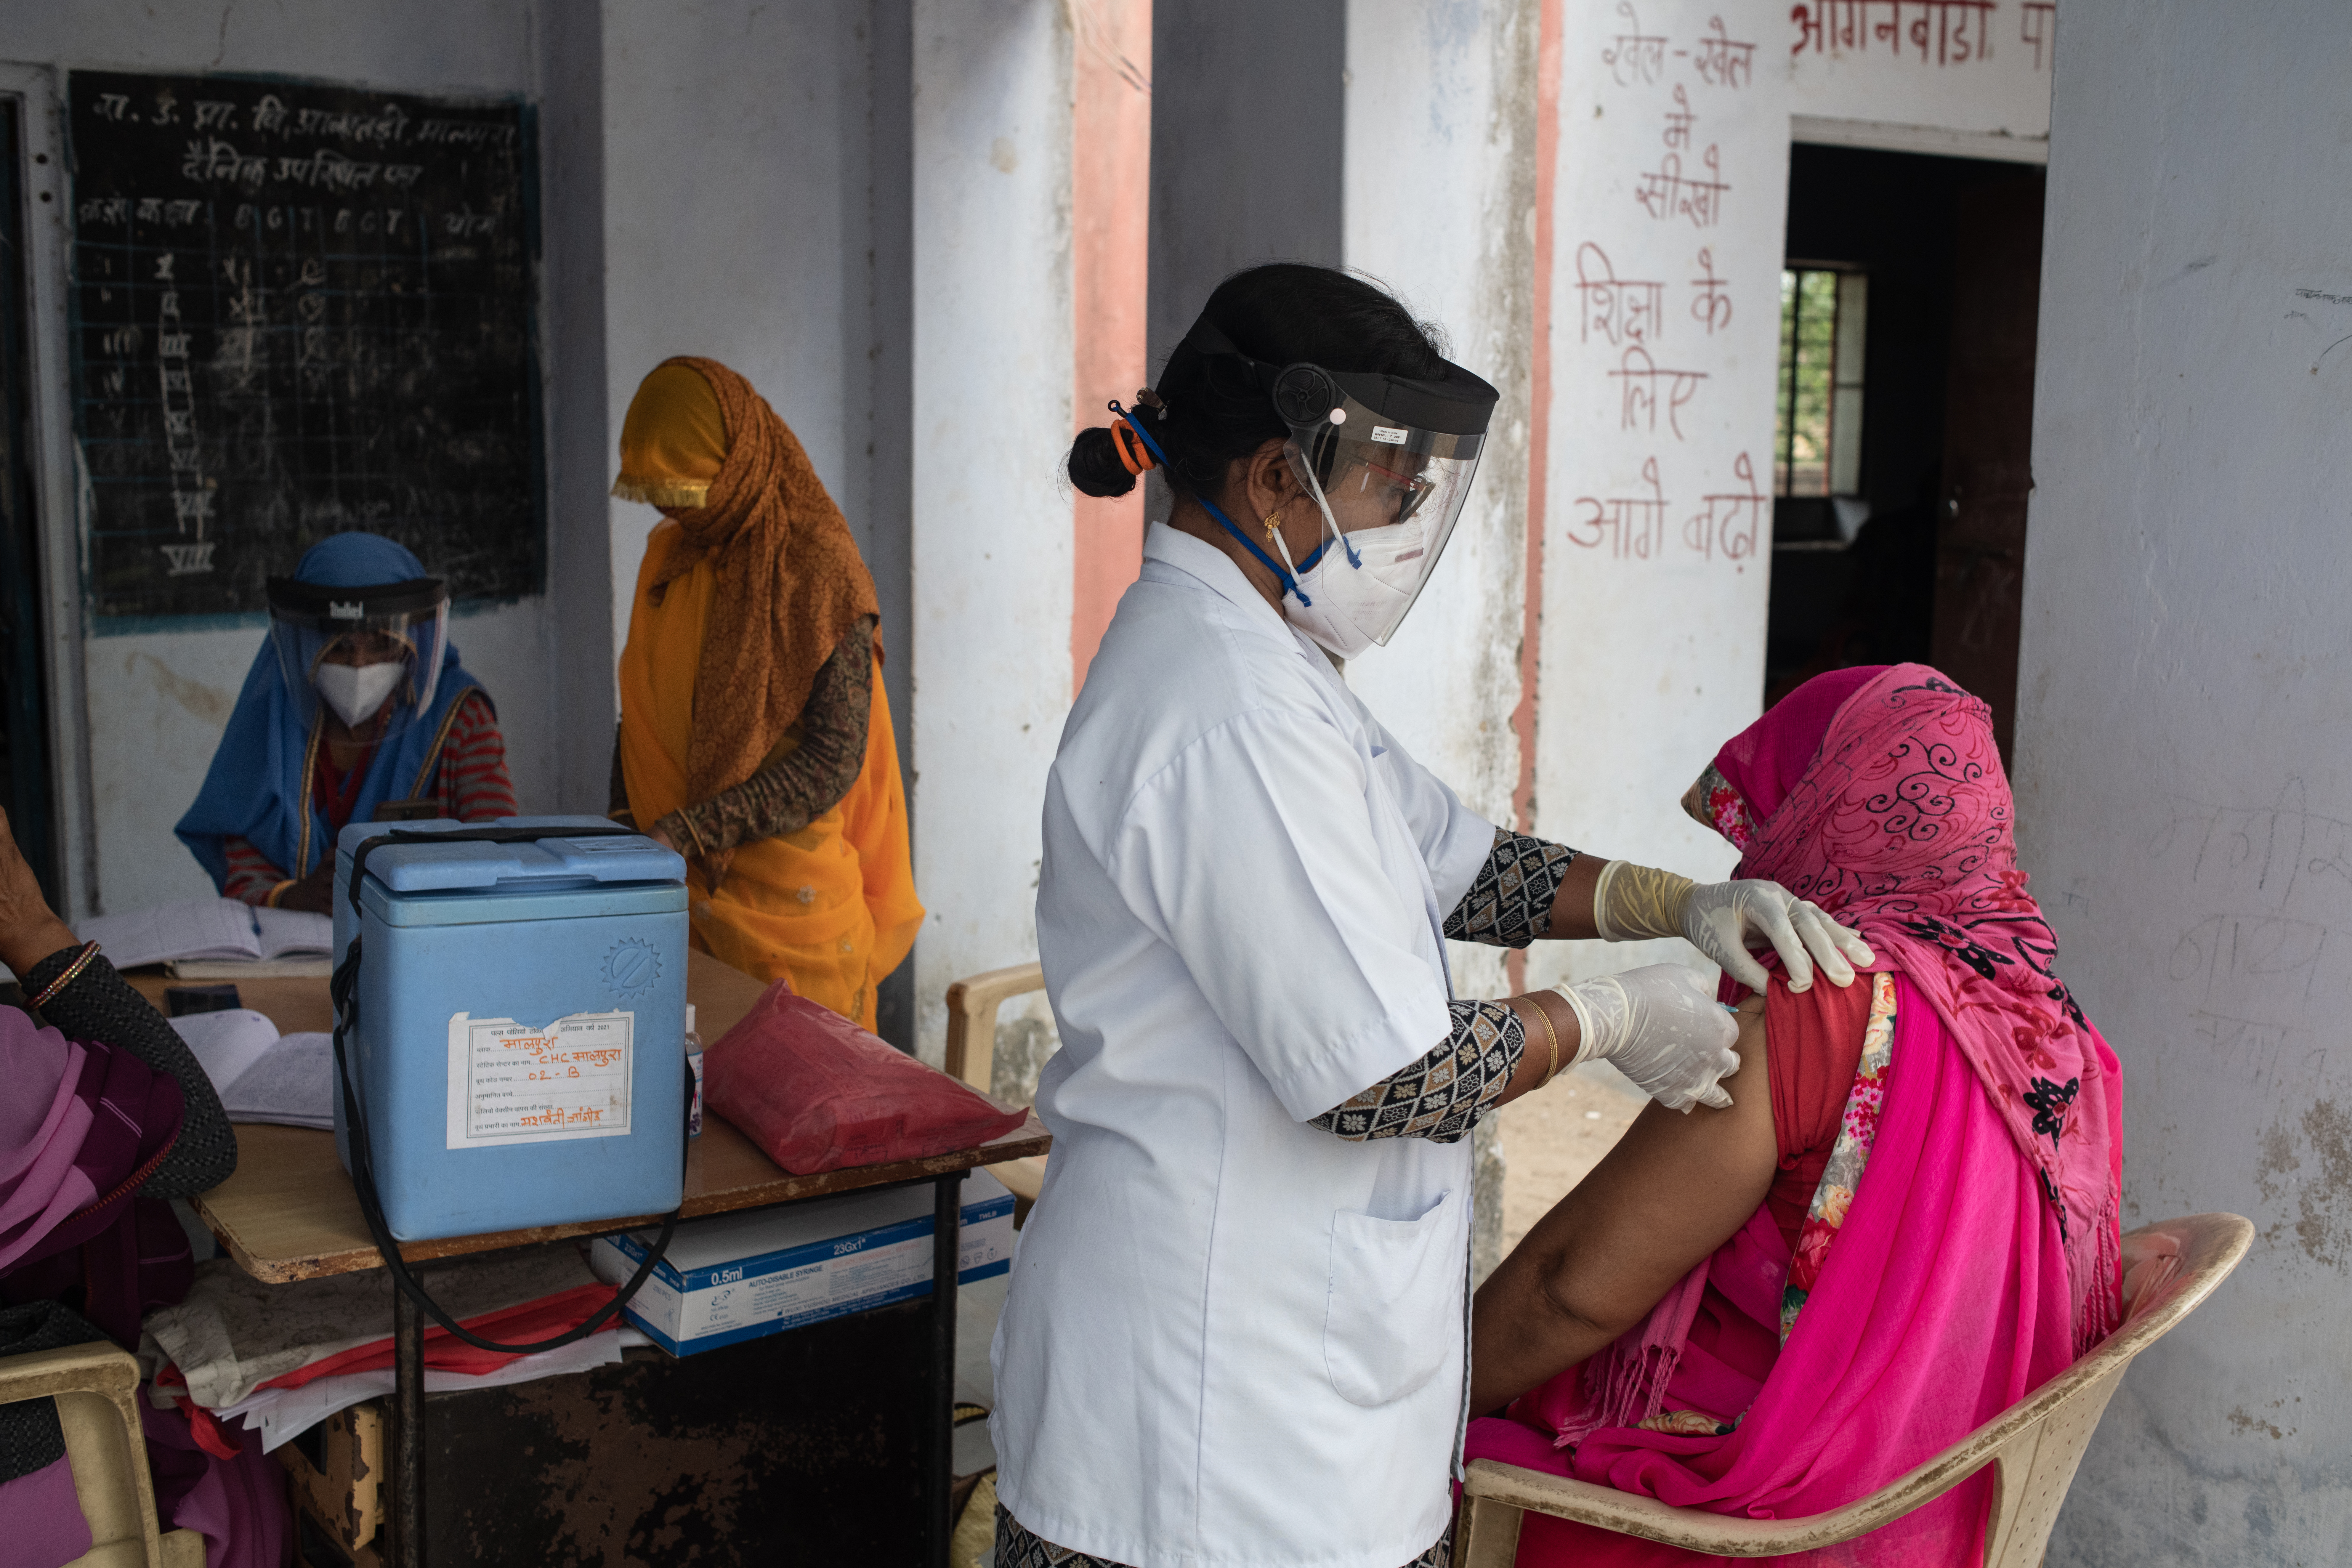 Covid-19 Disaster Reaches Deep Into Indian Towns And Villages